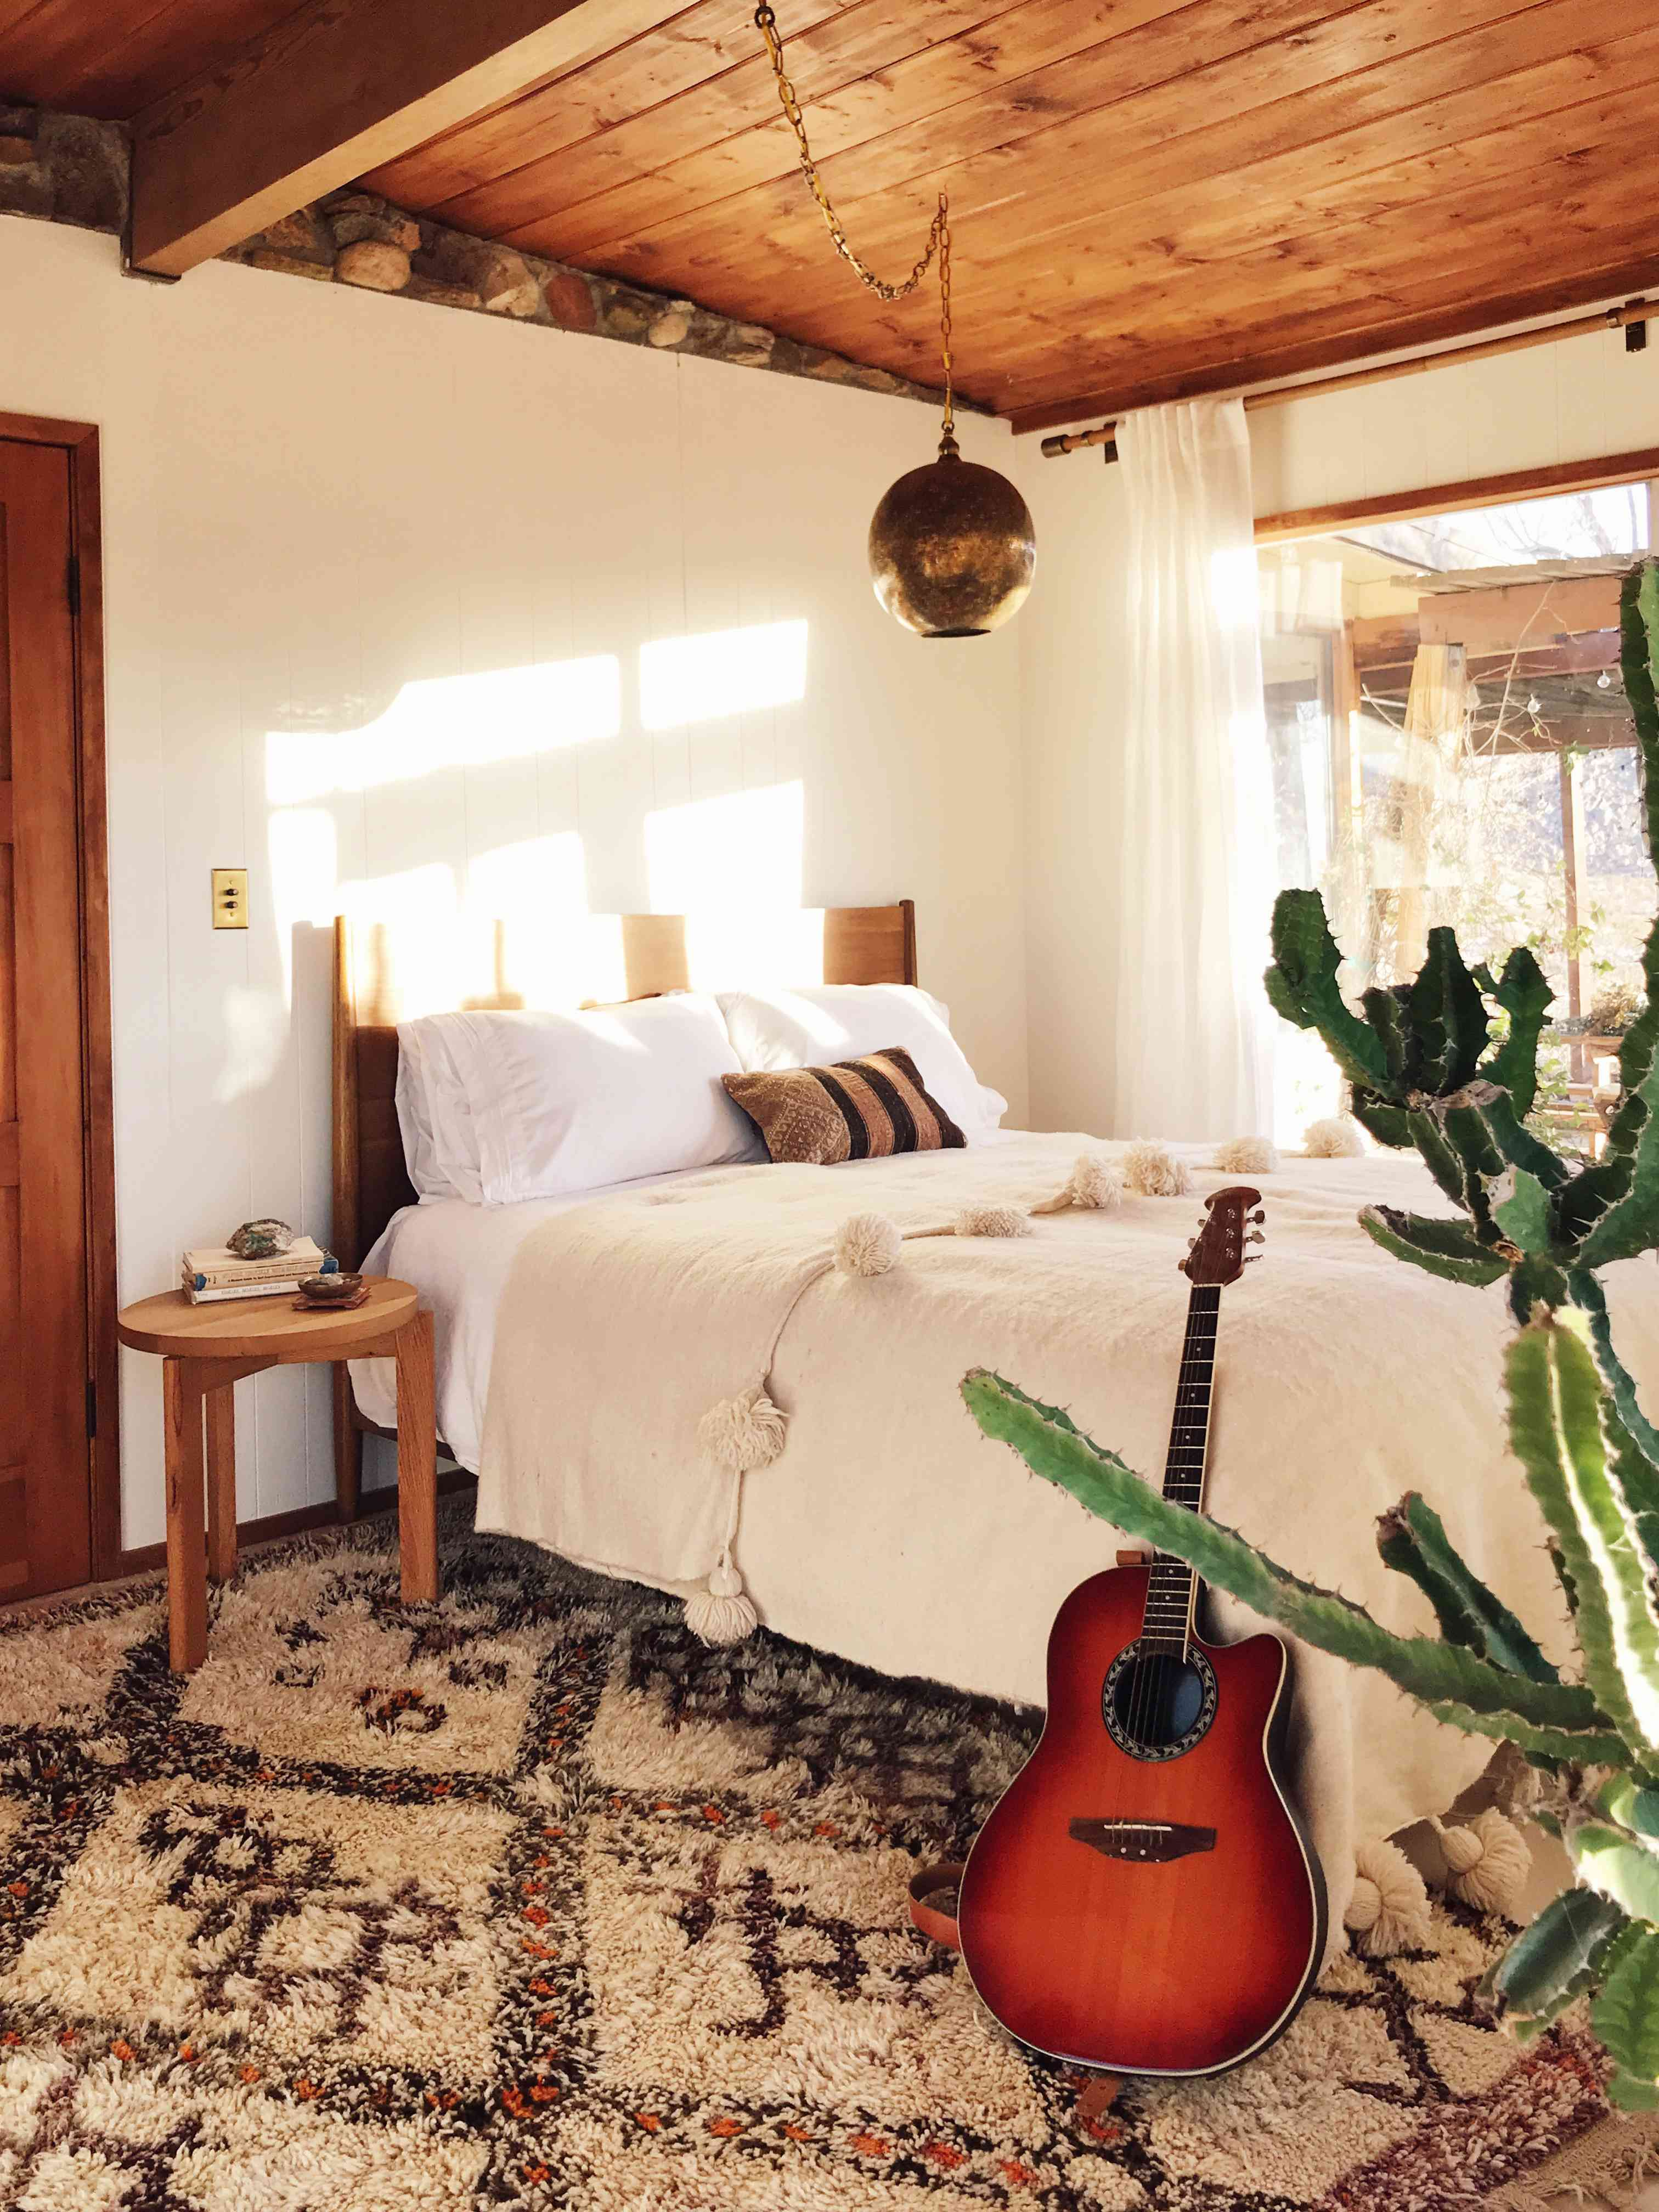 A bedroom in The Joshua Tree House, owned by Sara Combs